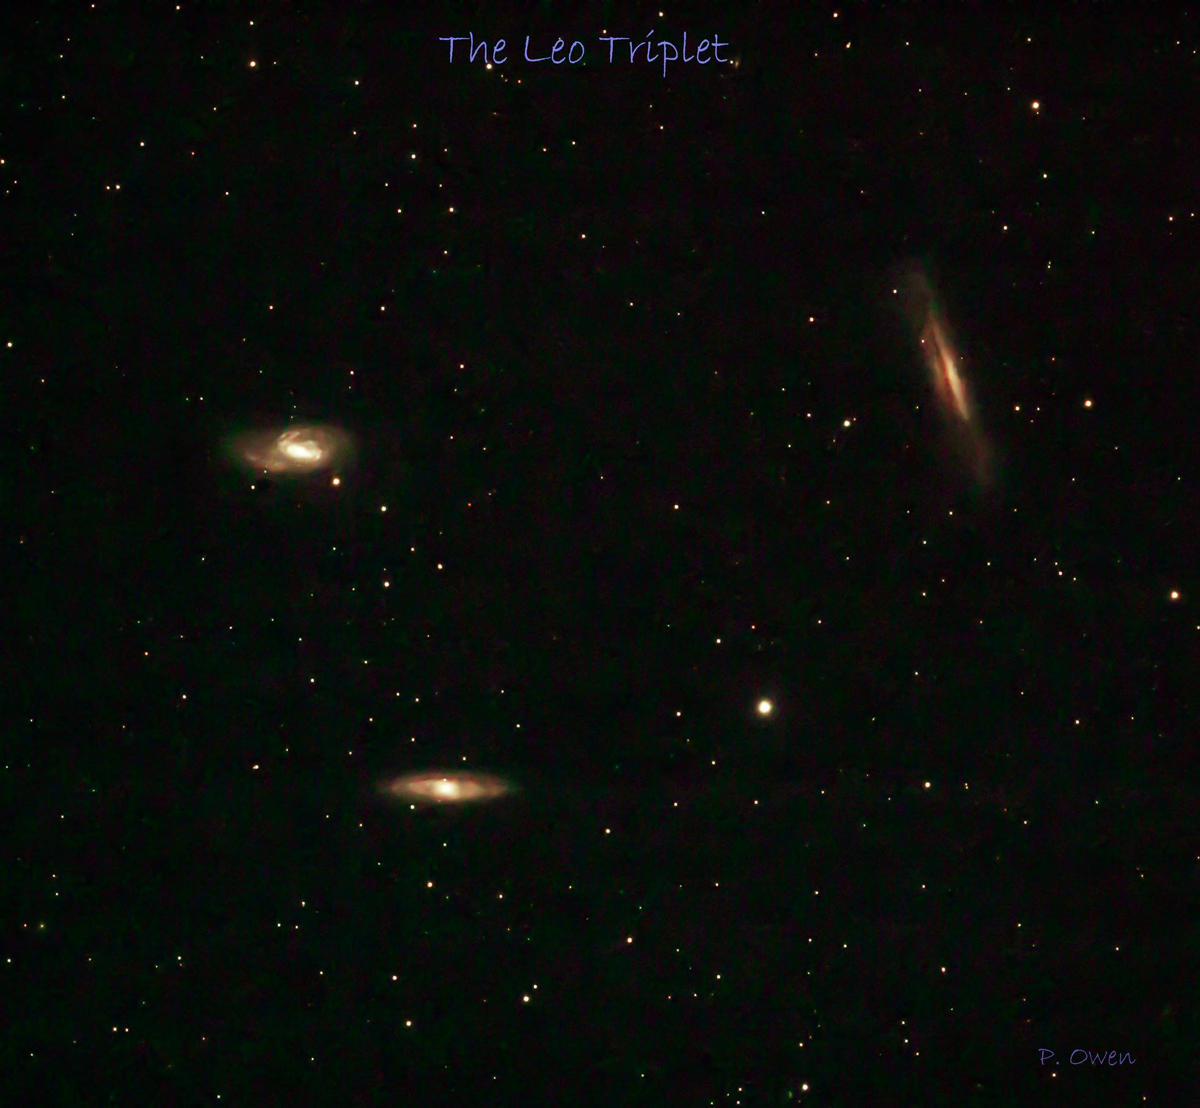 Photo of the Leo Triplet by Paul Owen during the summer of 2018.